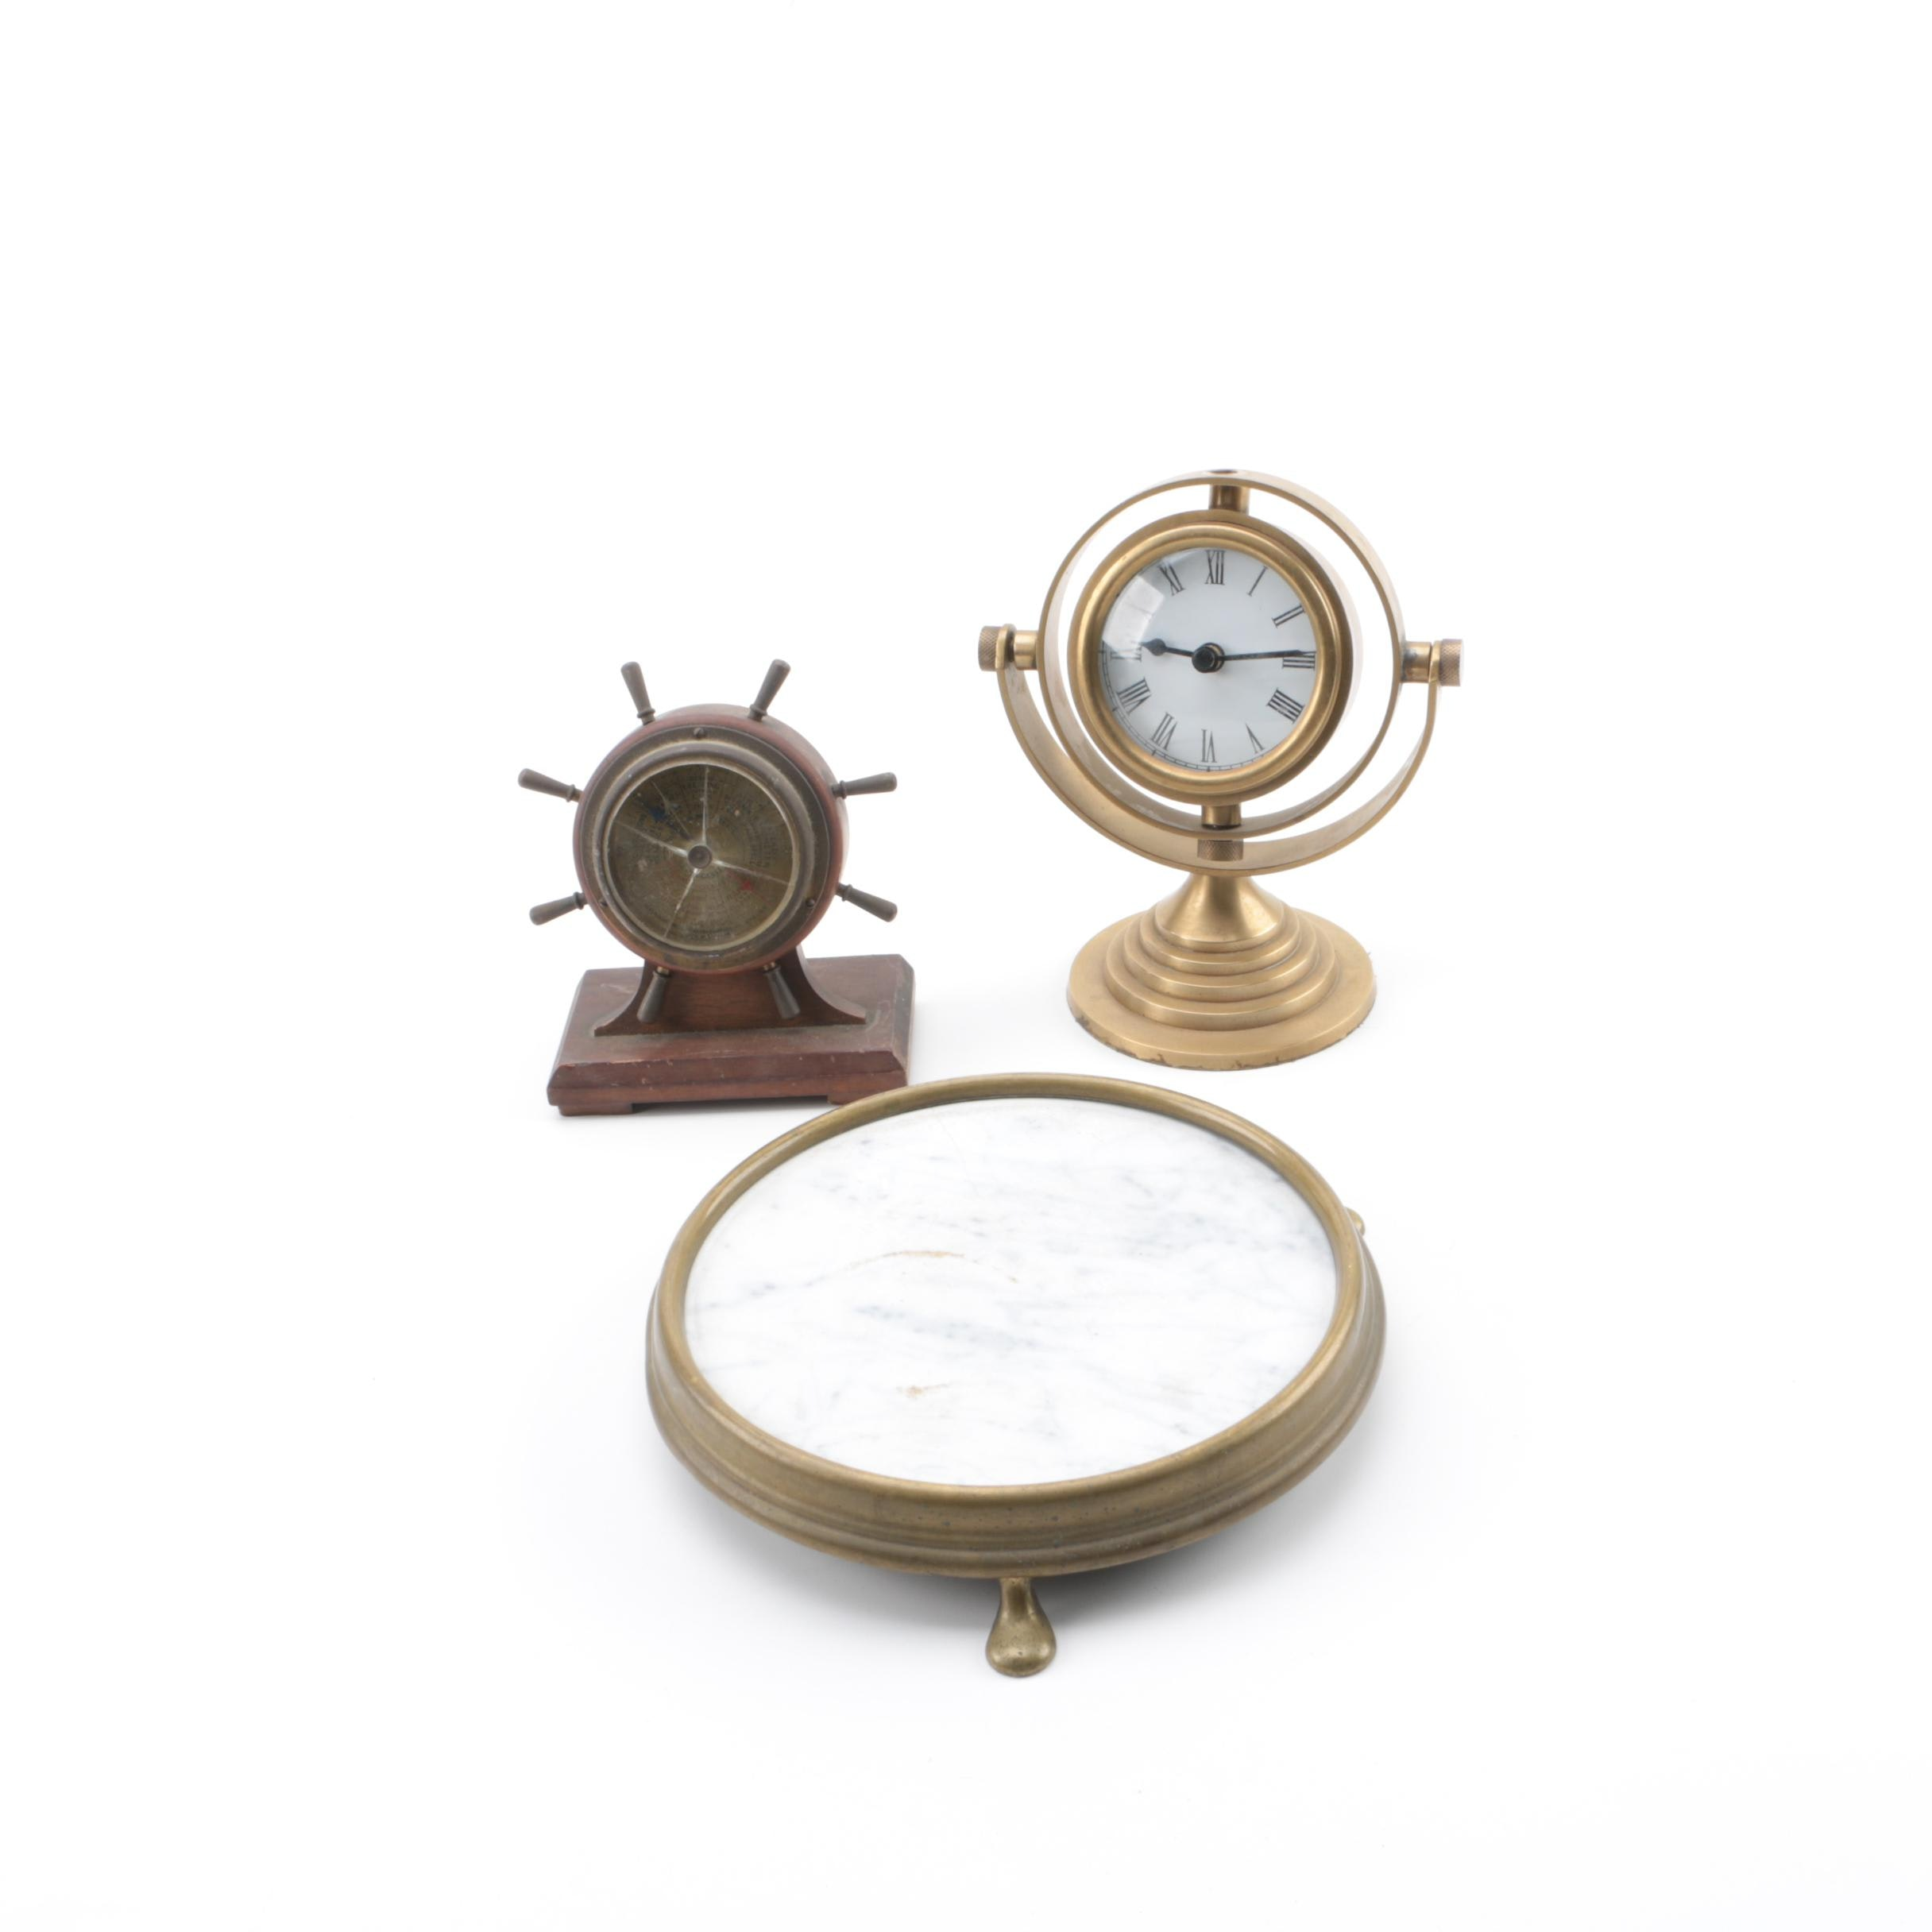 Spherical Clock and Nautical Barometer with Mirrored Stand